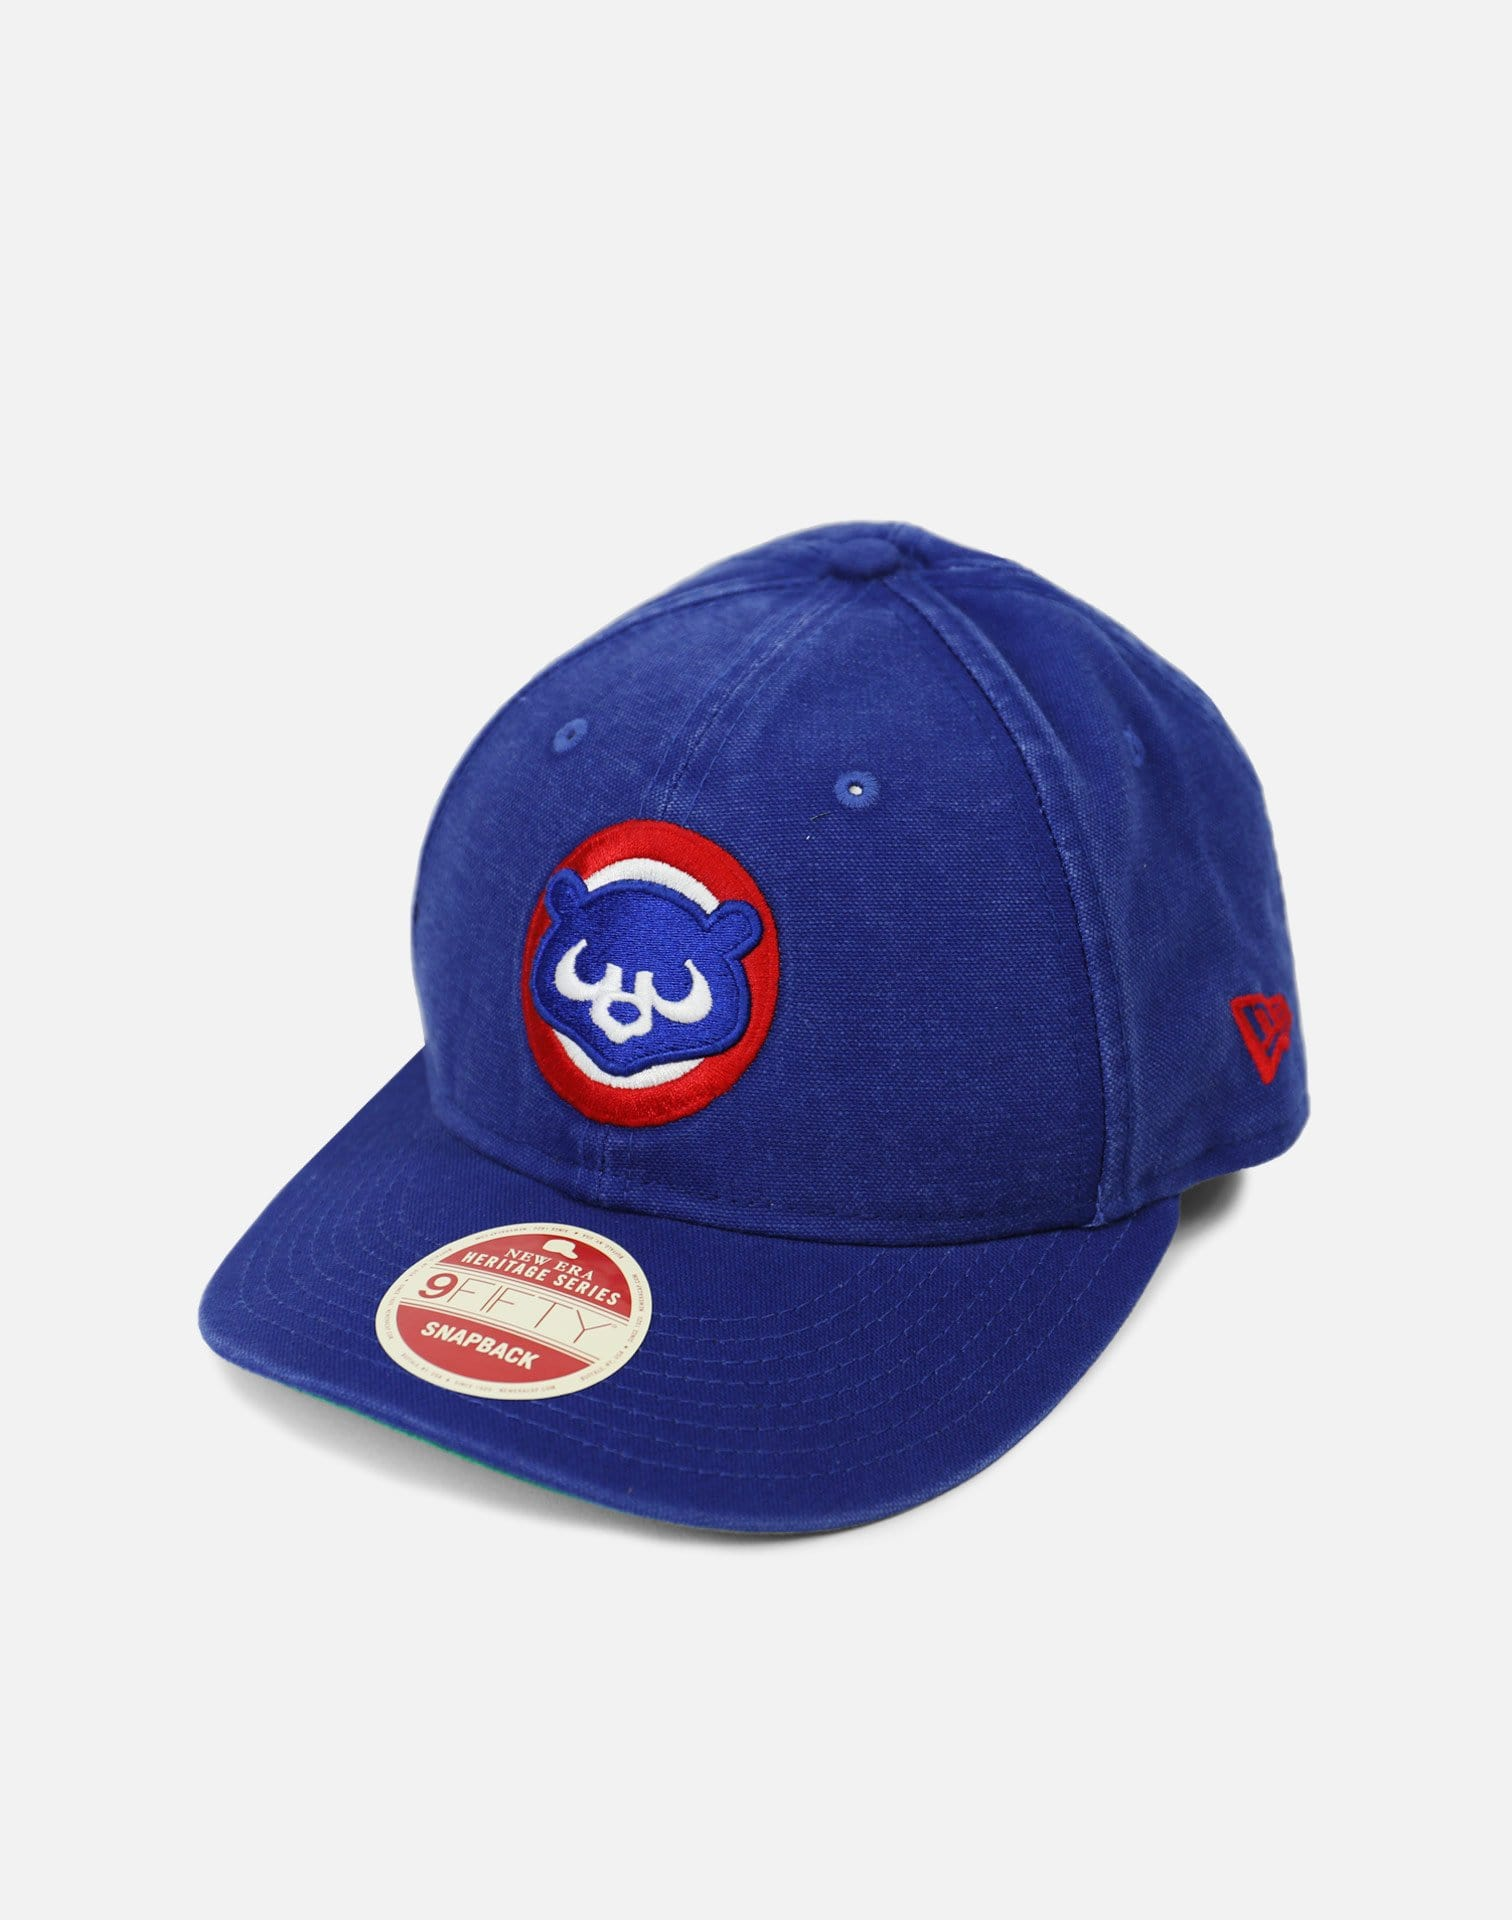 New Era Chicago Cubs Vintage Tribute Dad Hat (Blue/White-Red)